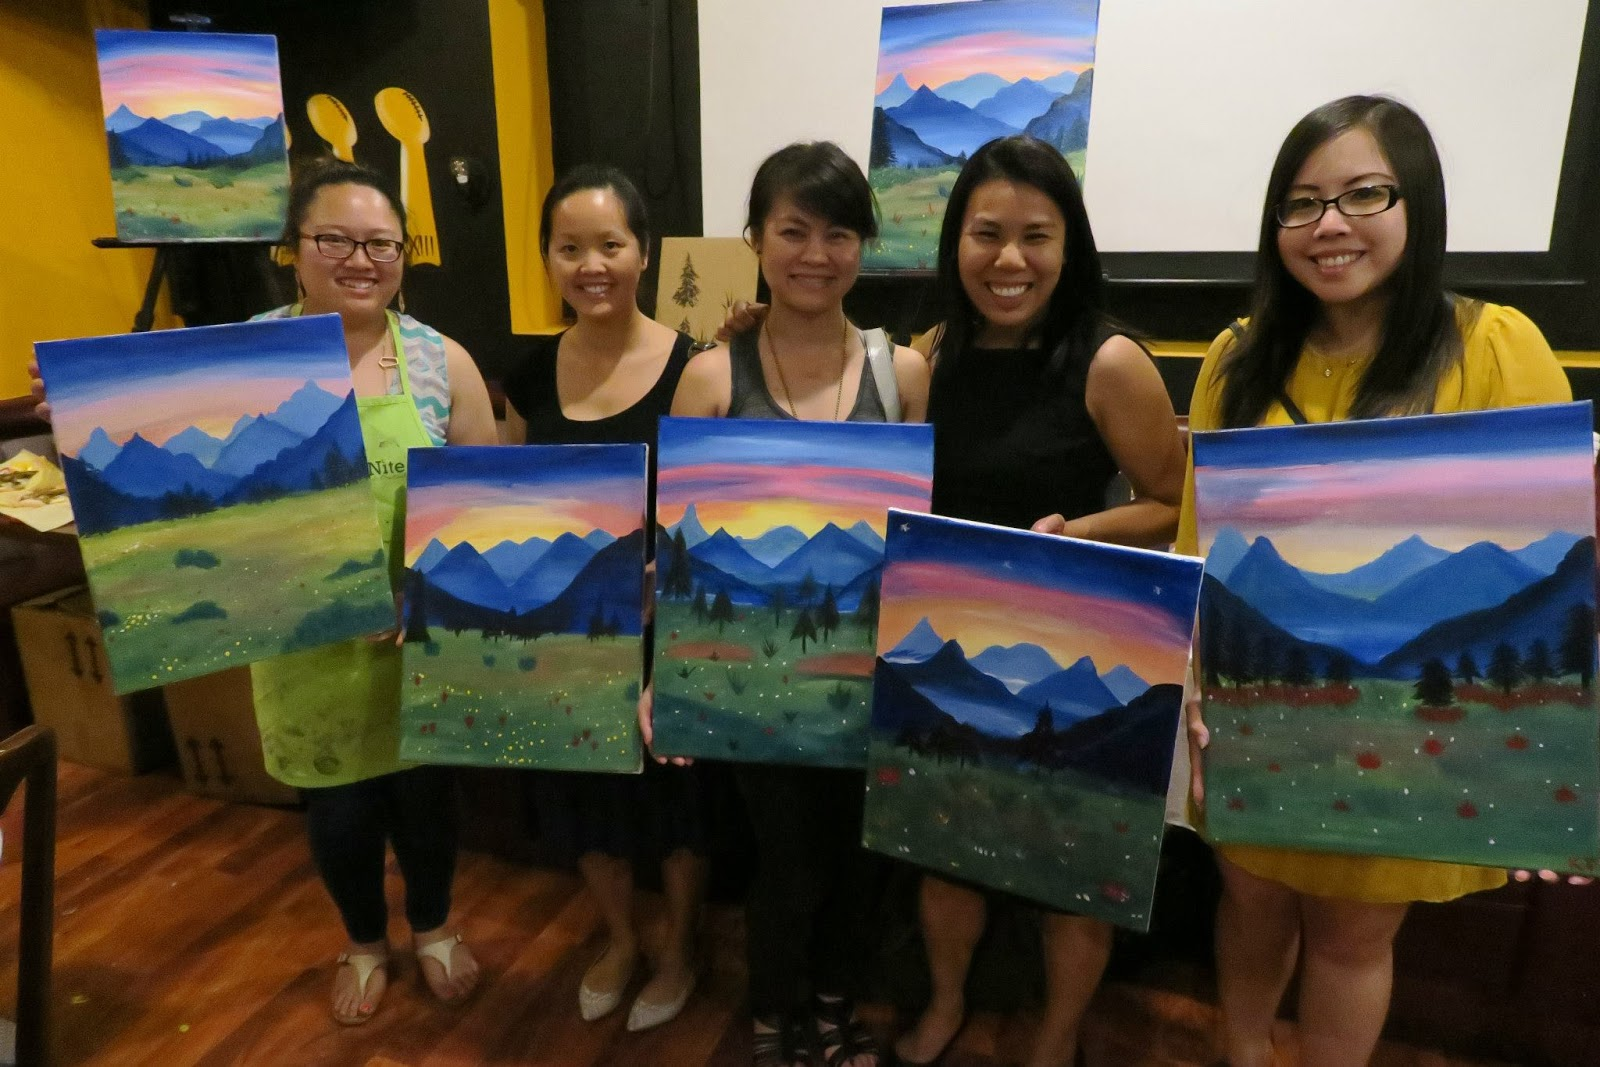 San jose food blog groupon deals for paint nite and glass for Groupon painting class